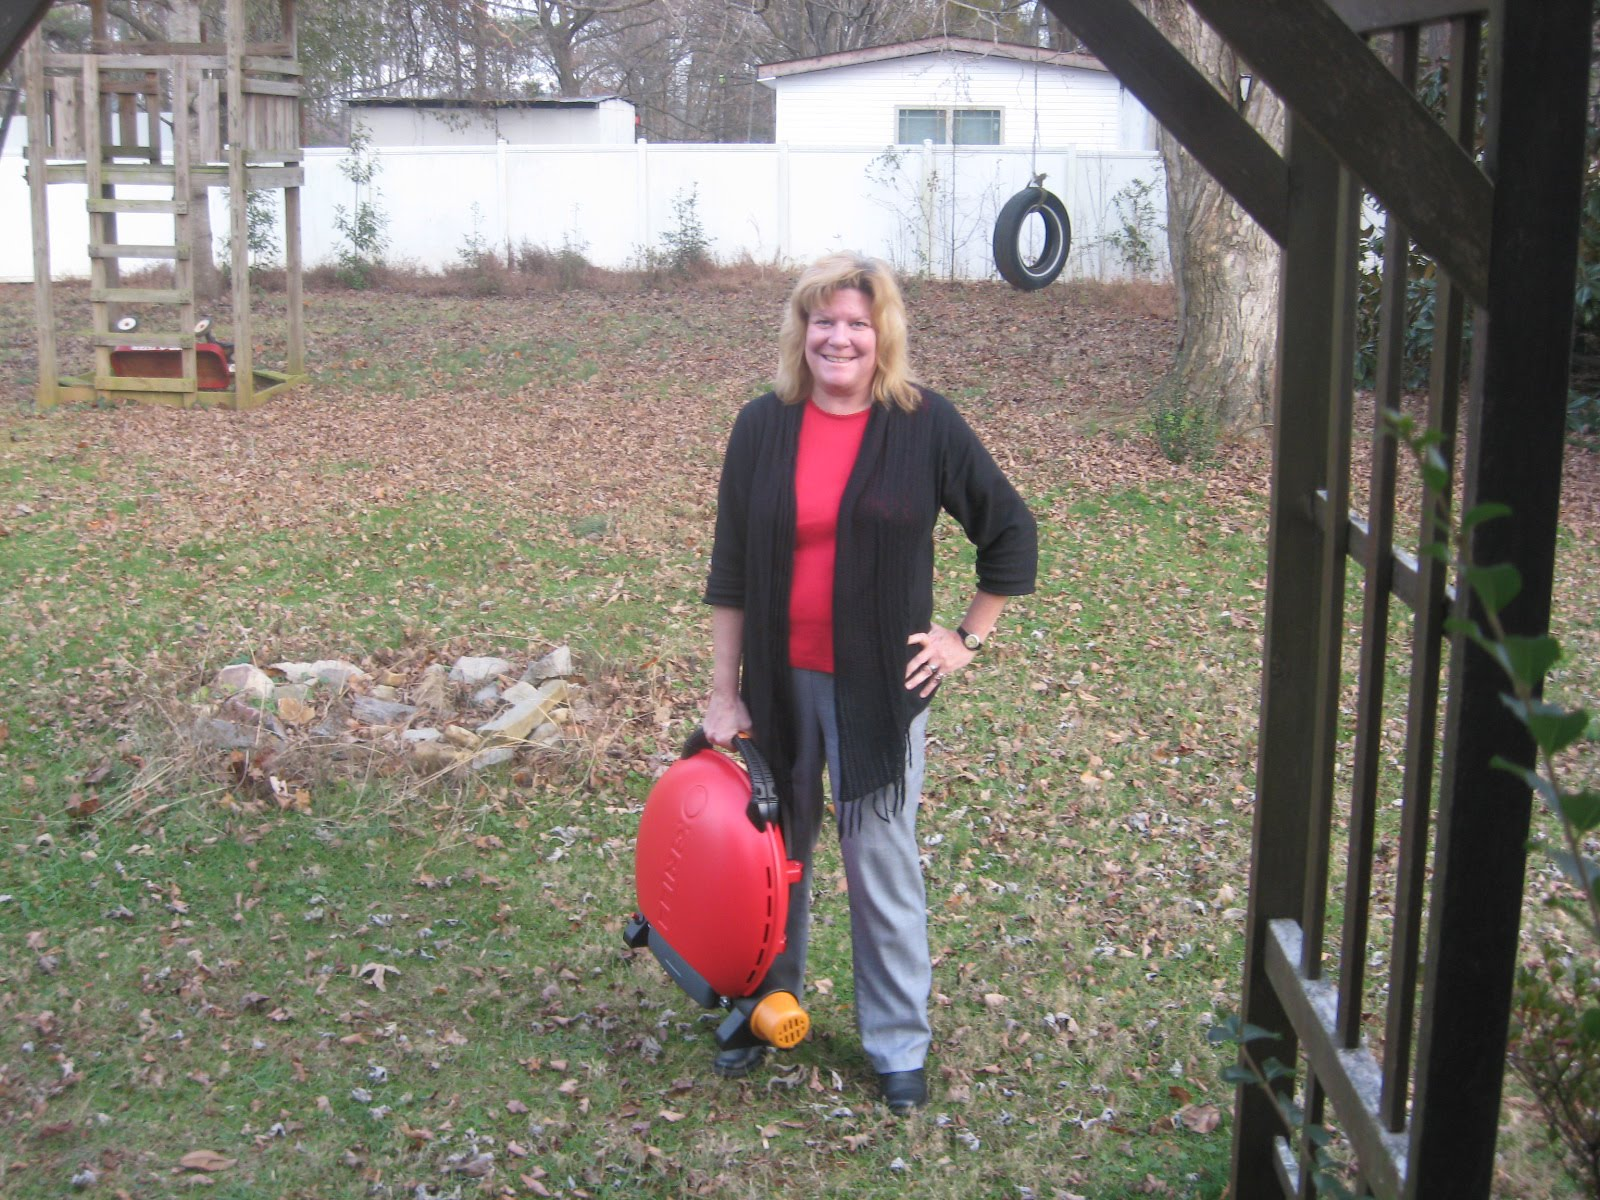 Cyndi With Compact Q Grill   Gas Model Itu0027s Hard To Get A Feel For The Size  From Basic Model Photos, So Here You Can See Me Carrying The O Grill 3000.